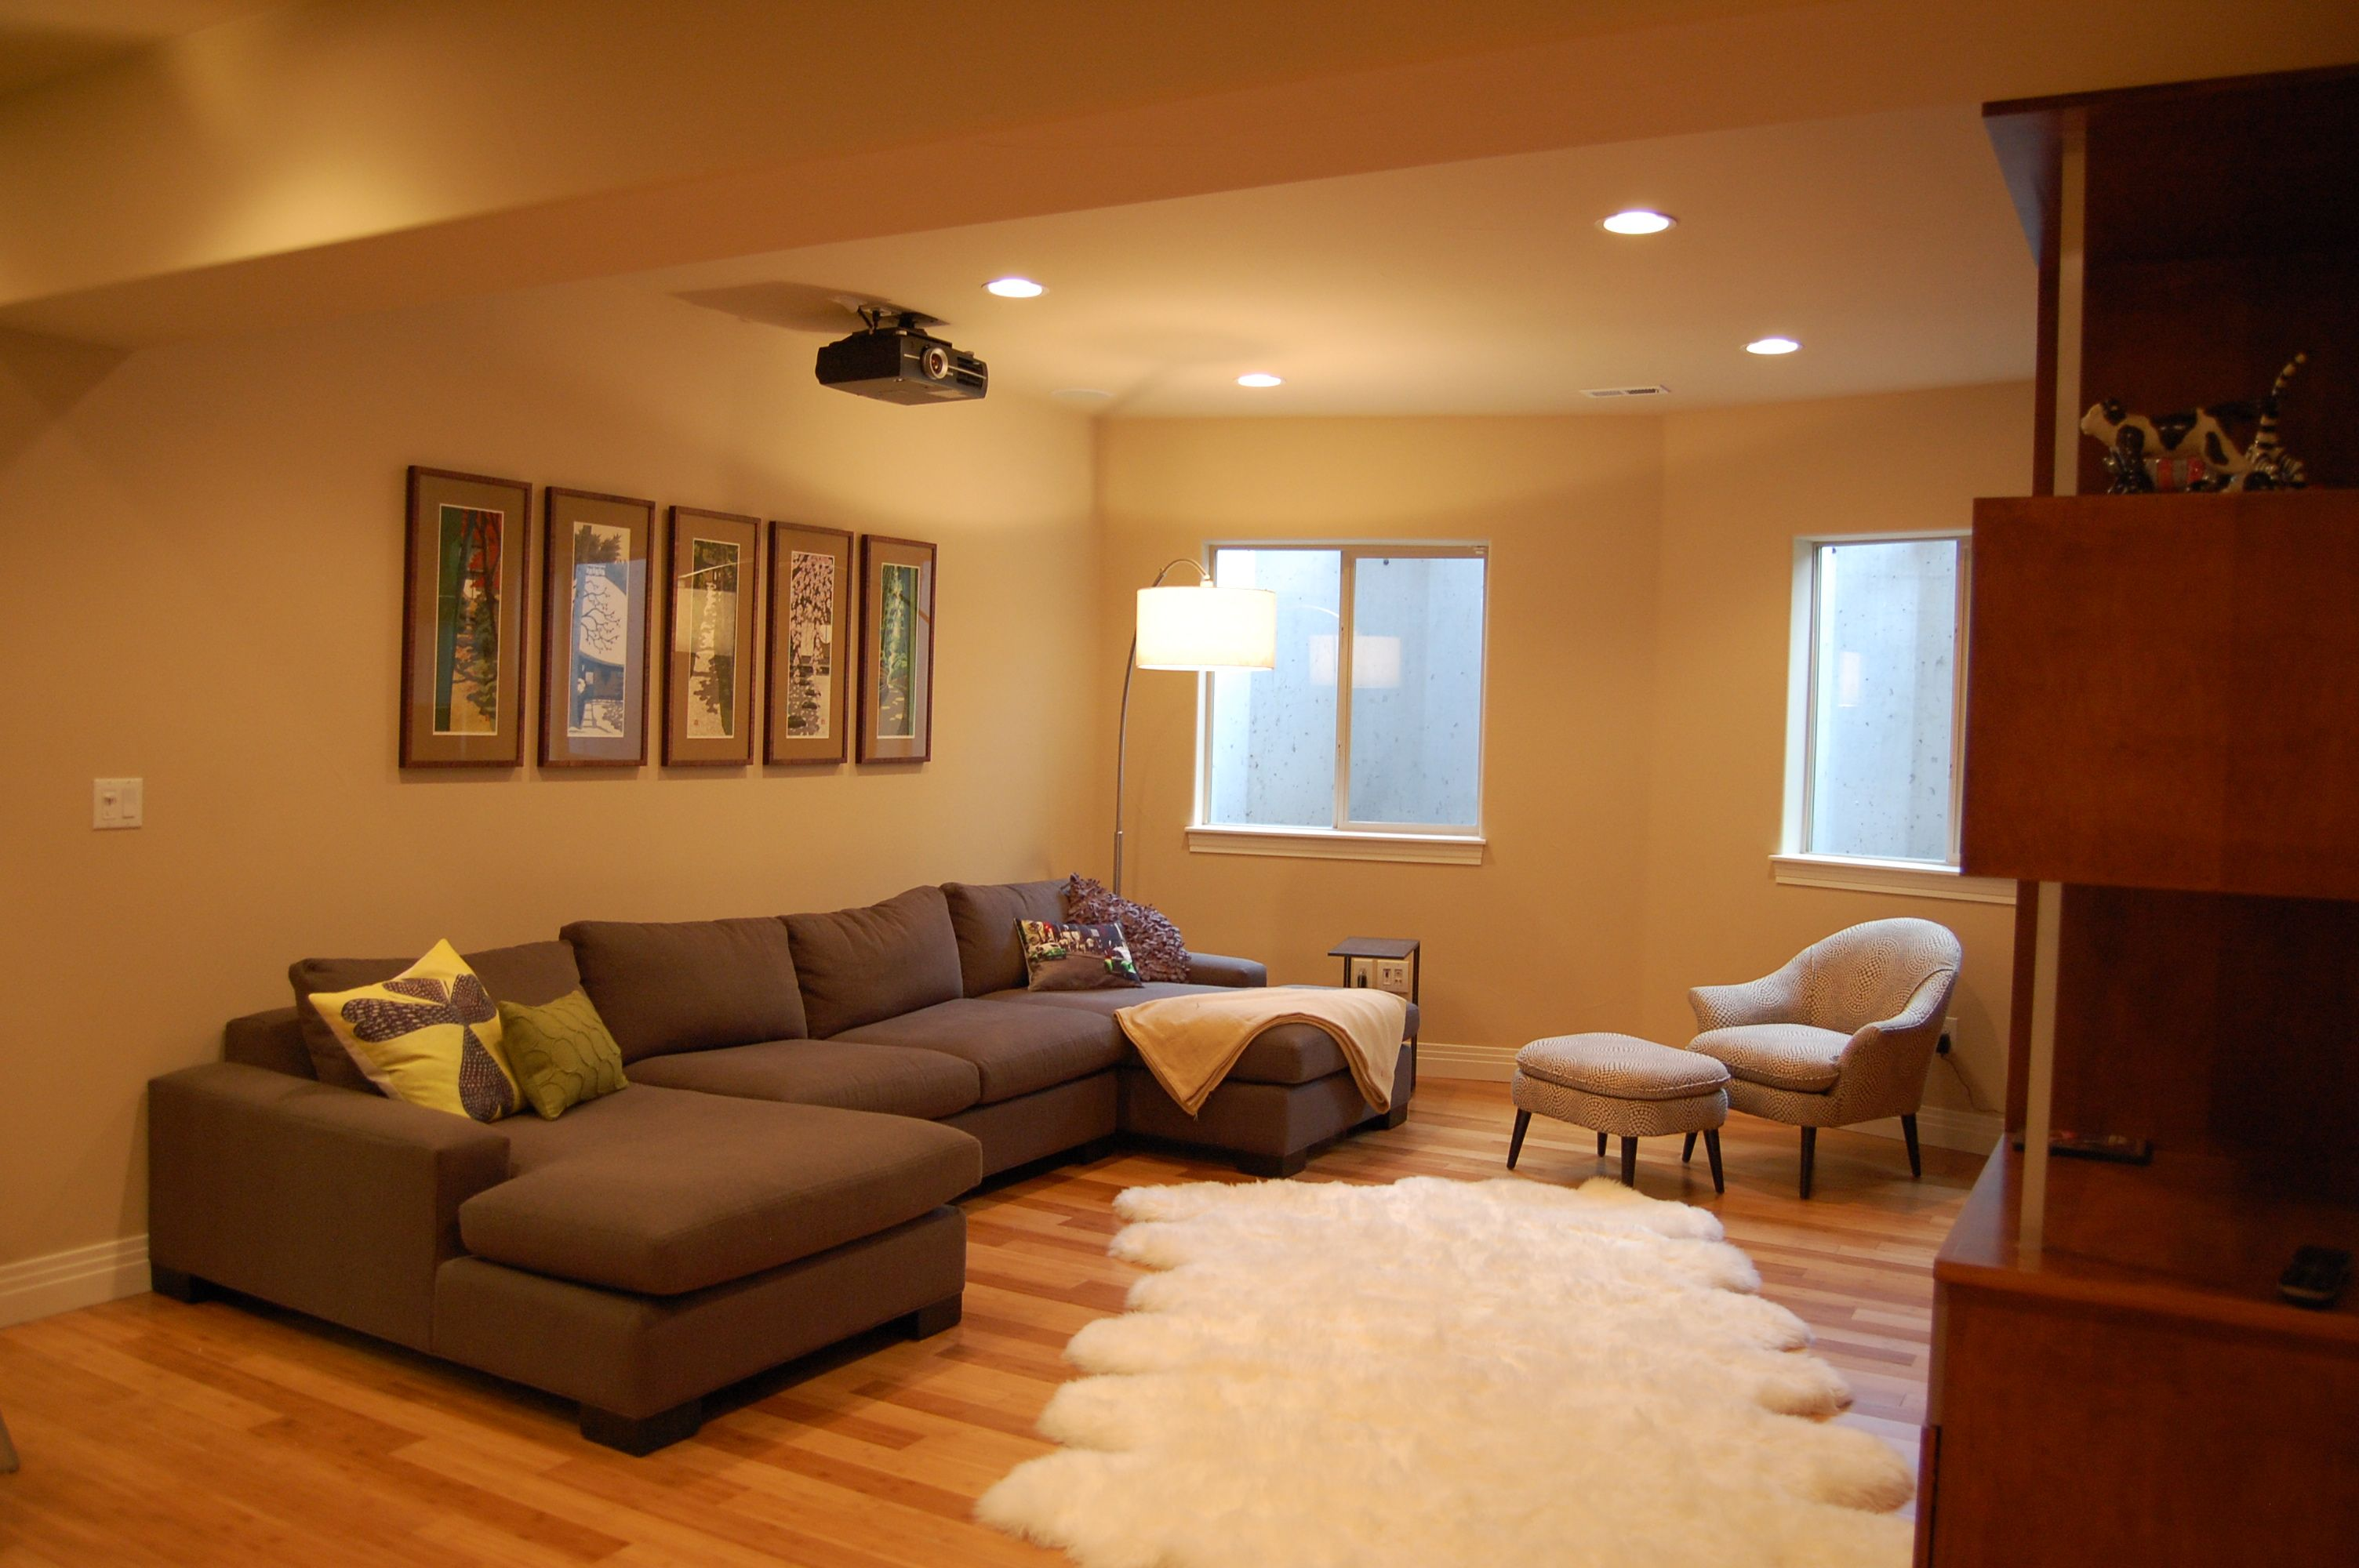 Basement Living Room Designs Awesome 23 Most Popular Small Basement Ideas Decor And Remodel  Man Design Decoration